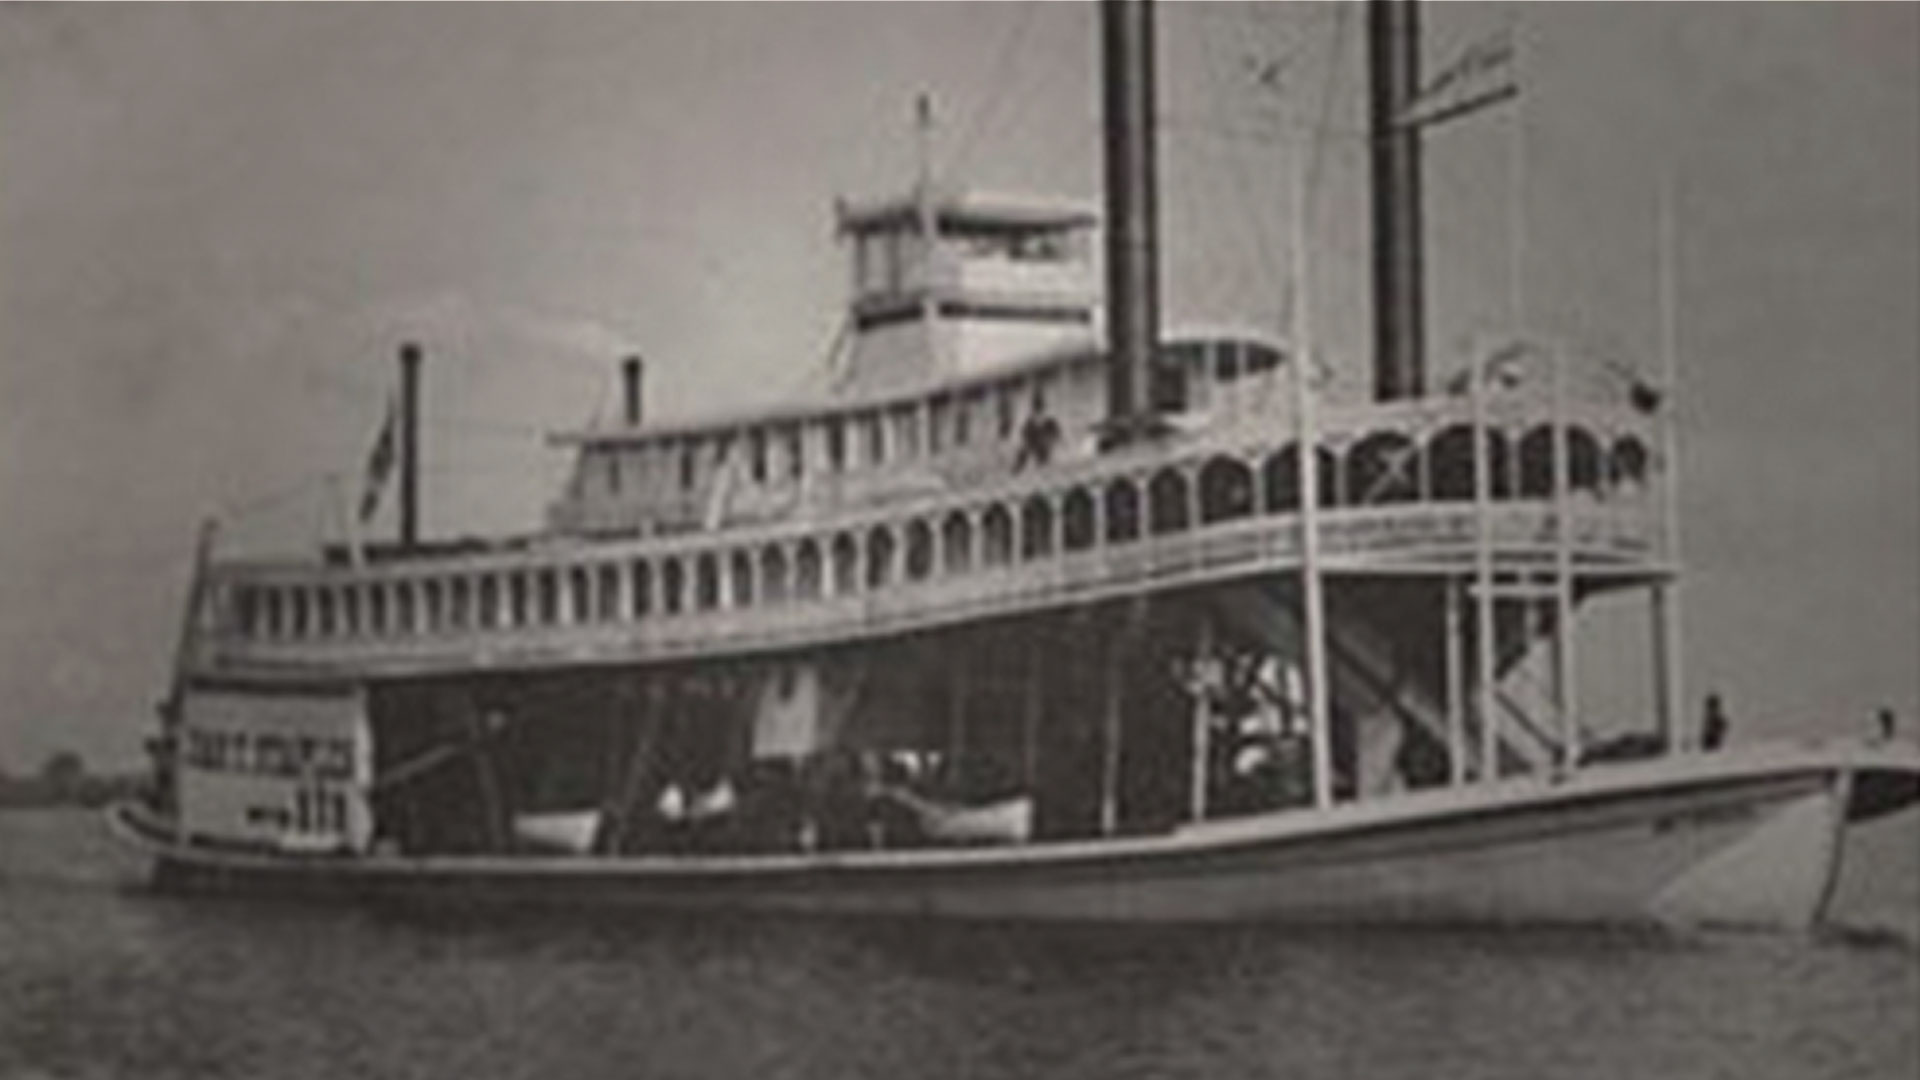 James T. Staples Riverboat